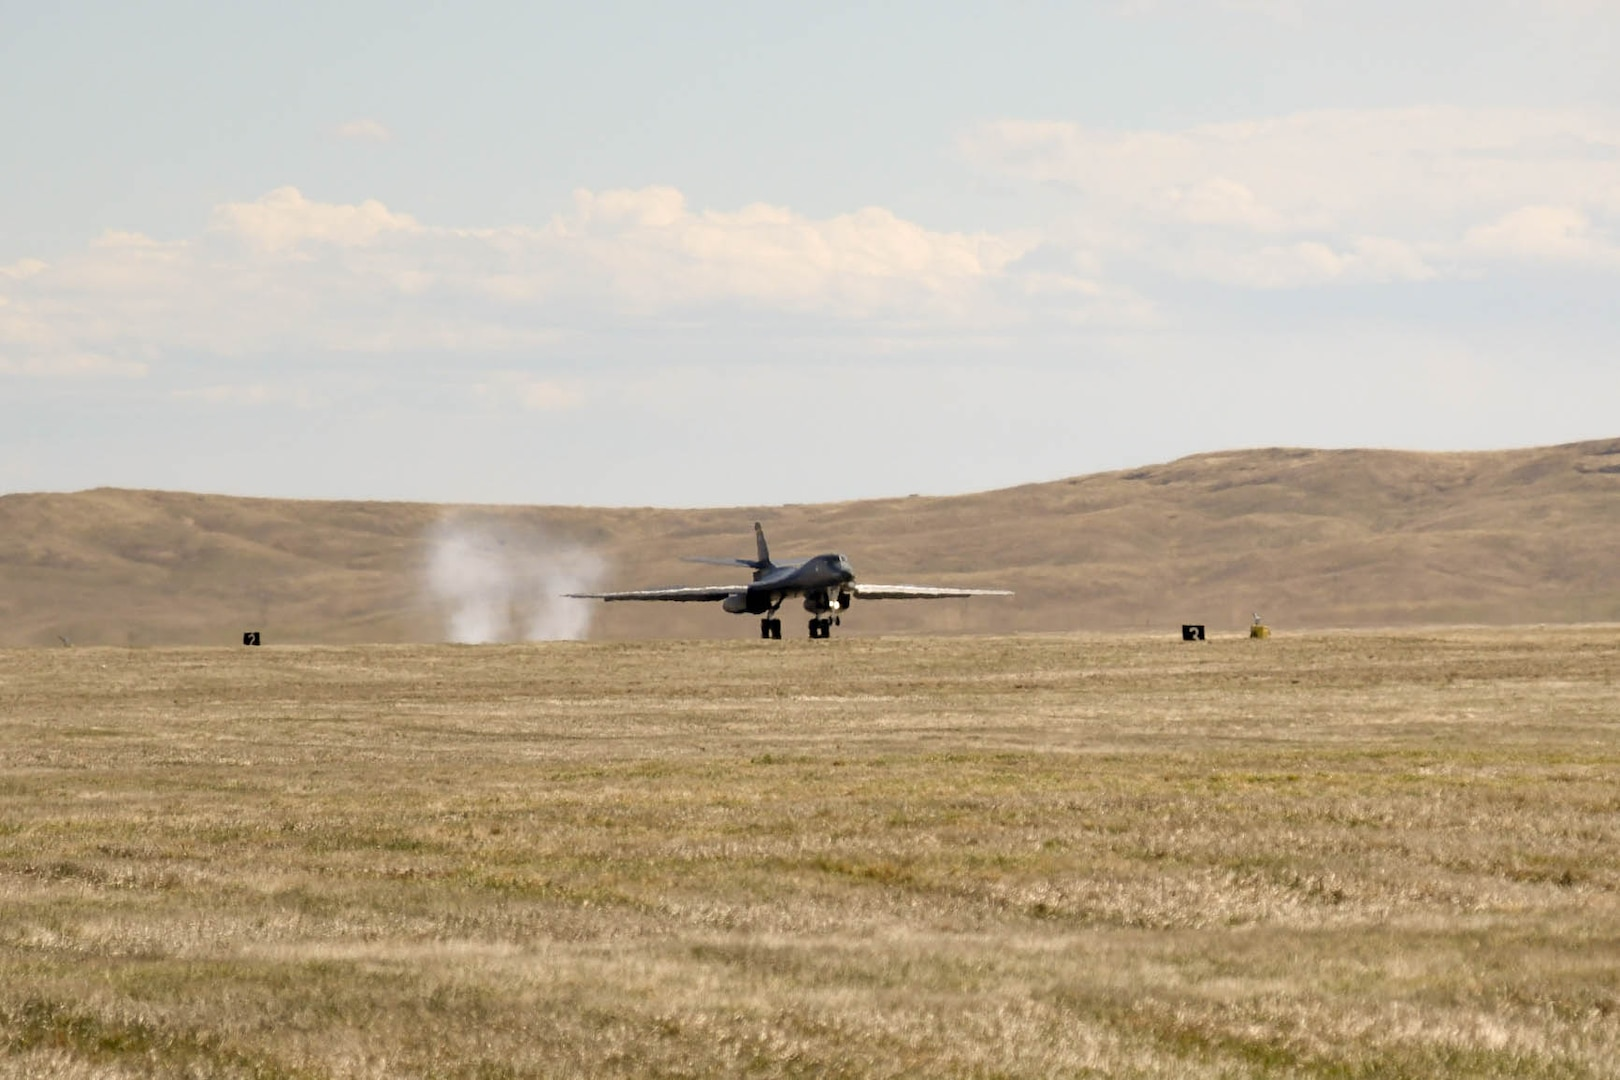 A B-1B Lancer touches down at Ellsworth Air Force Base, S.D., after completing a nearly 29-hour round-trip sortie to the Pacific theater of operations April 22, 2020.